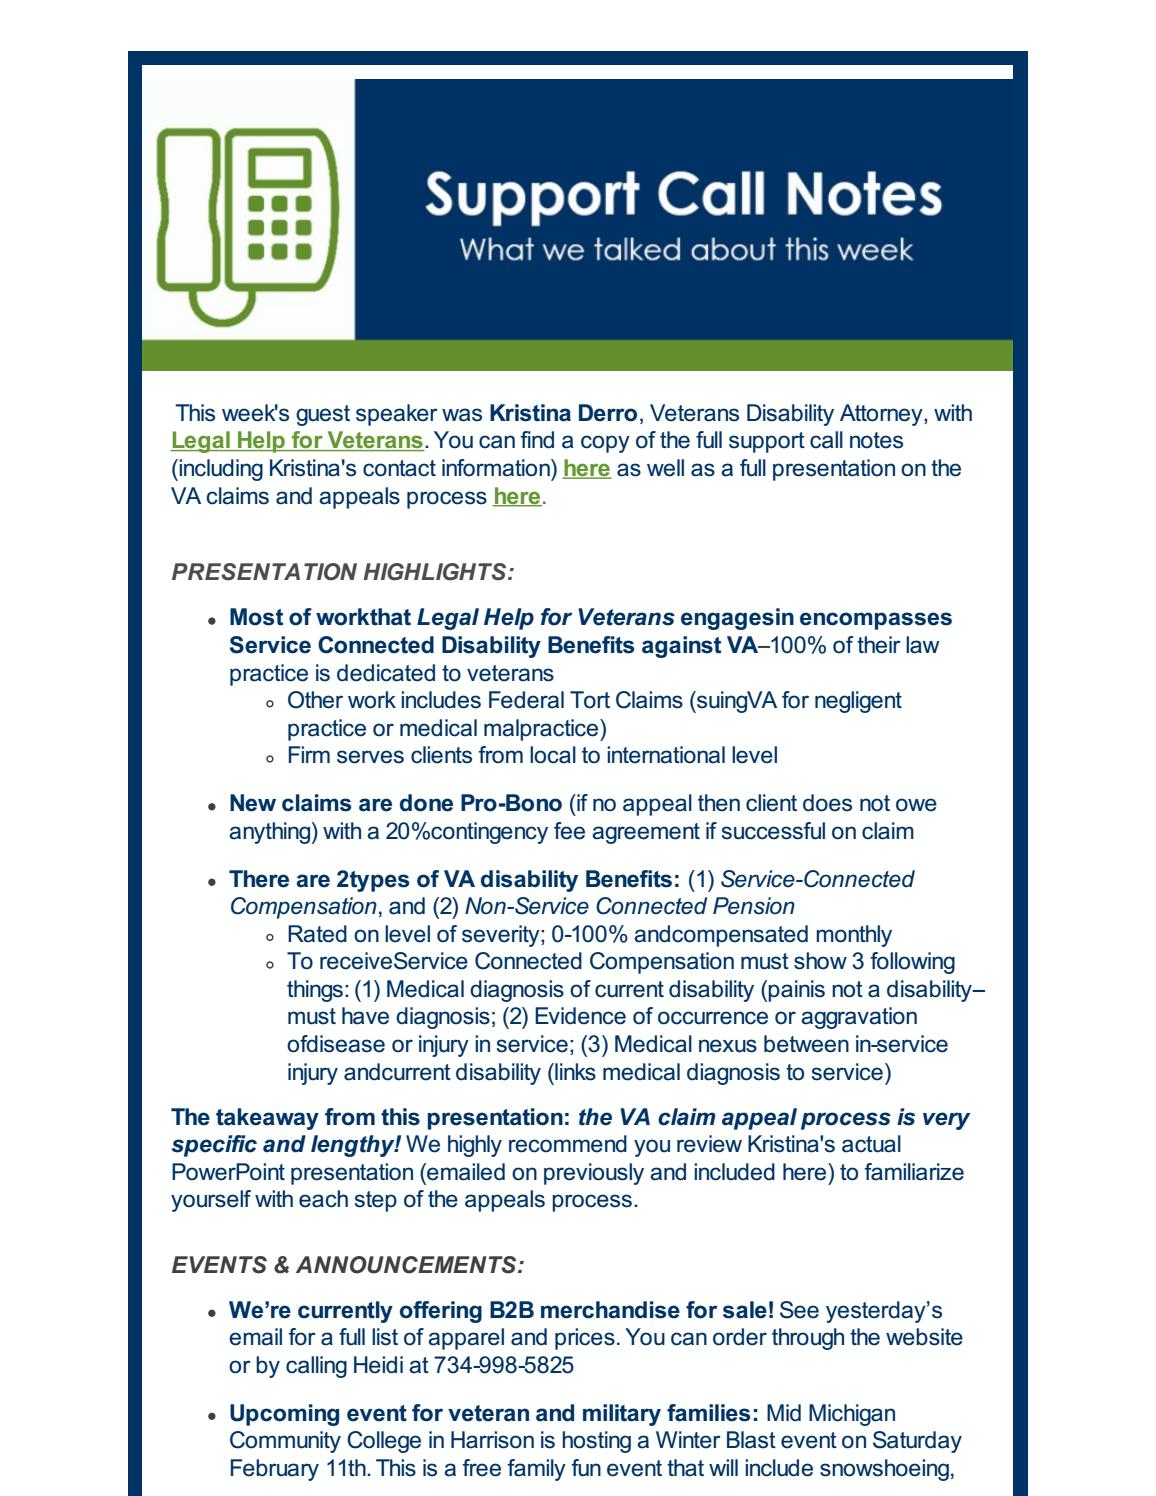 Support Call Notes | Legal Help for Veterans by Buddy-to-Buddy